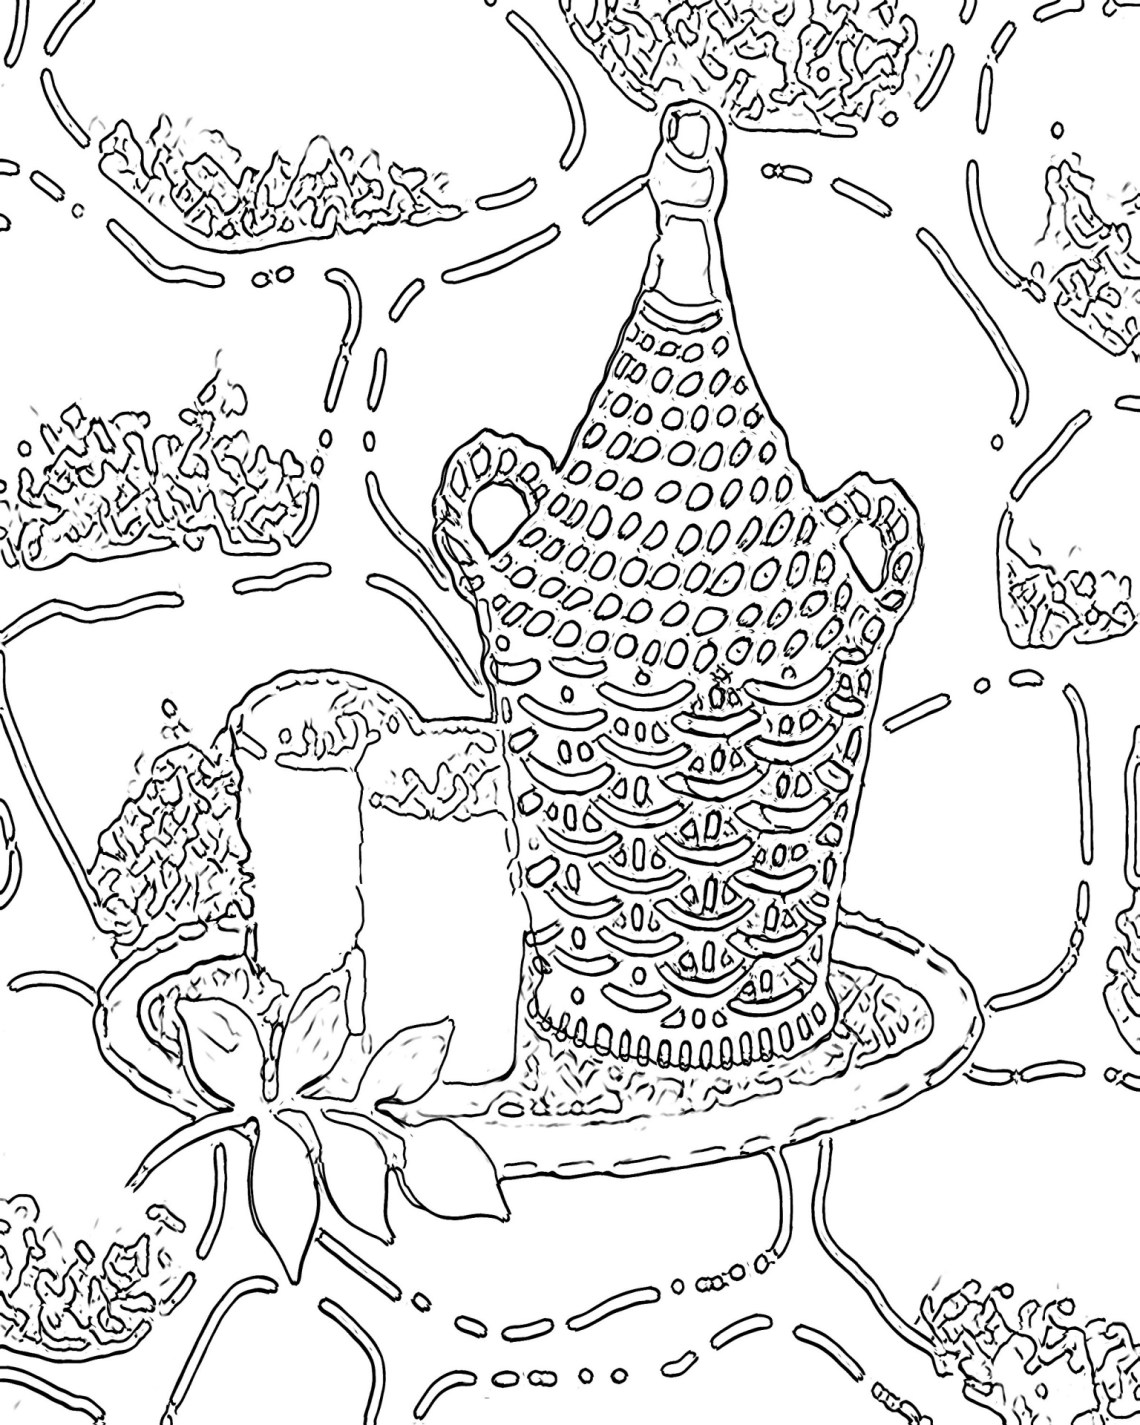 Free Printable Abstract Coloring Pages for Adults | free fun coloring pages for adults